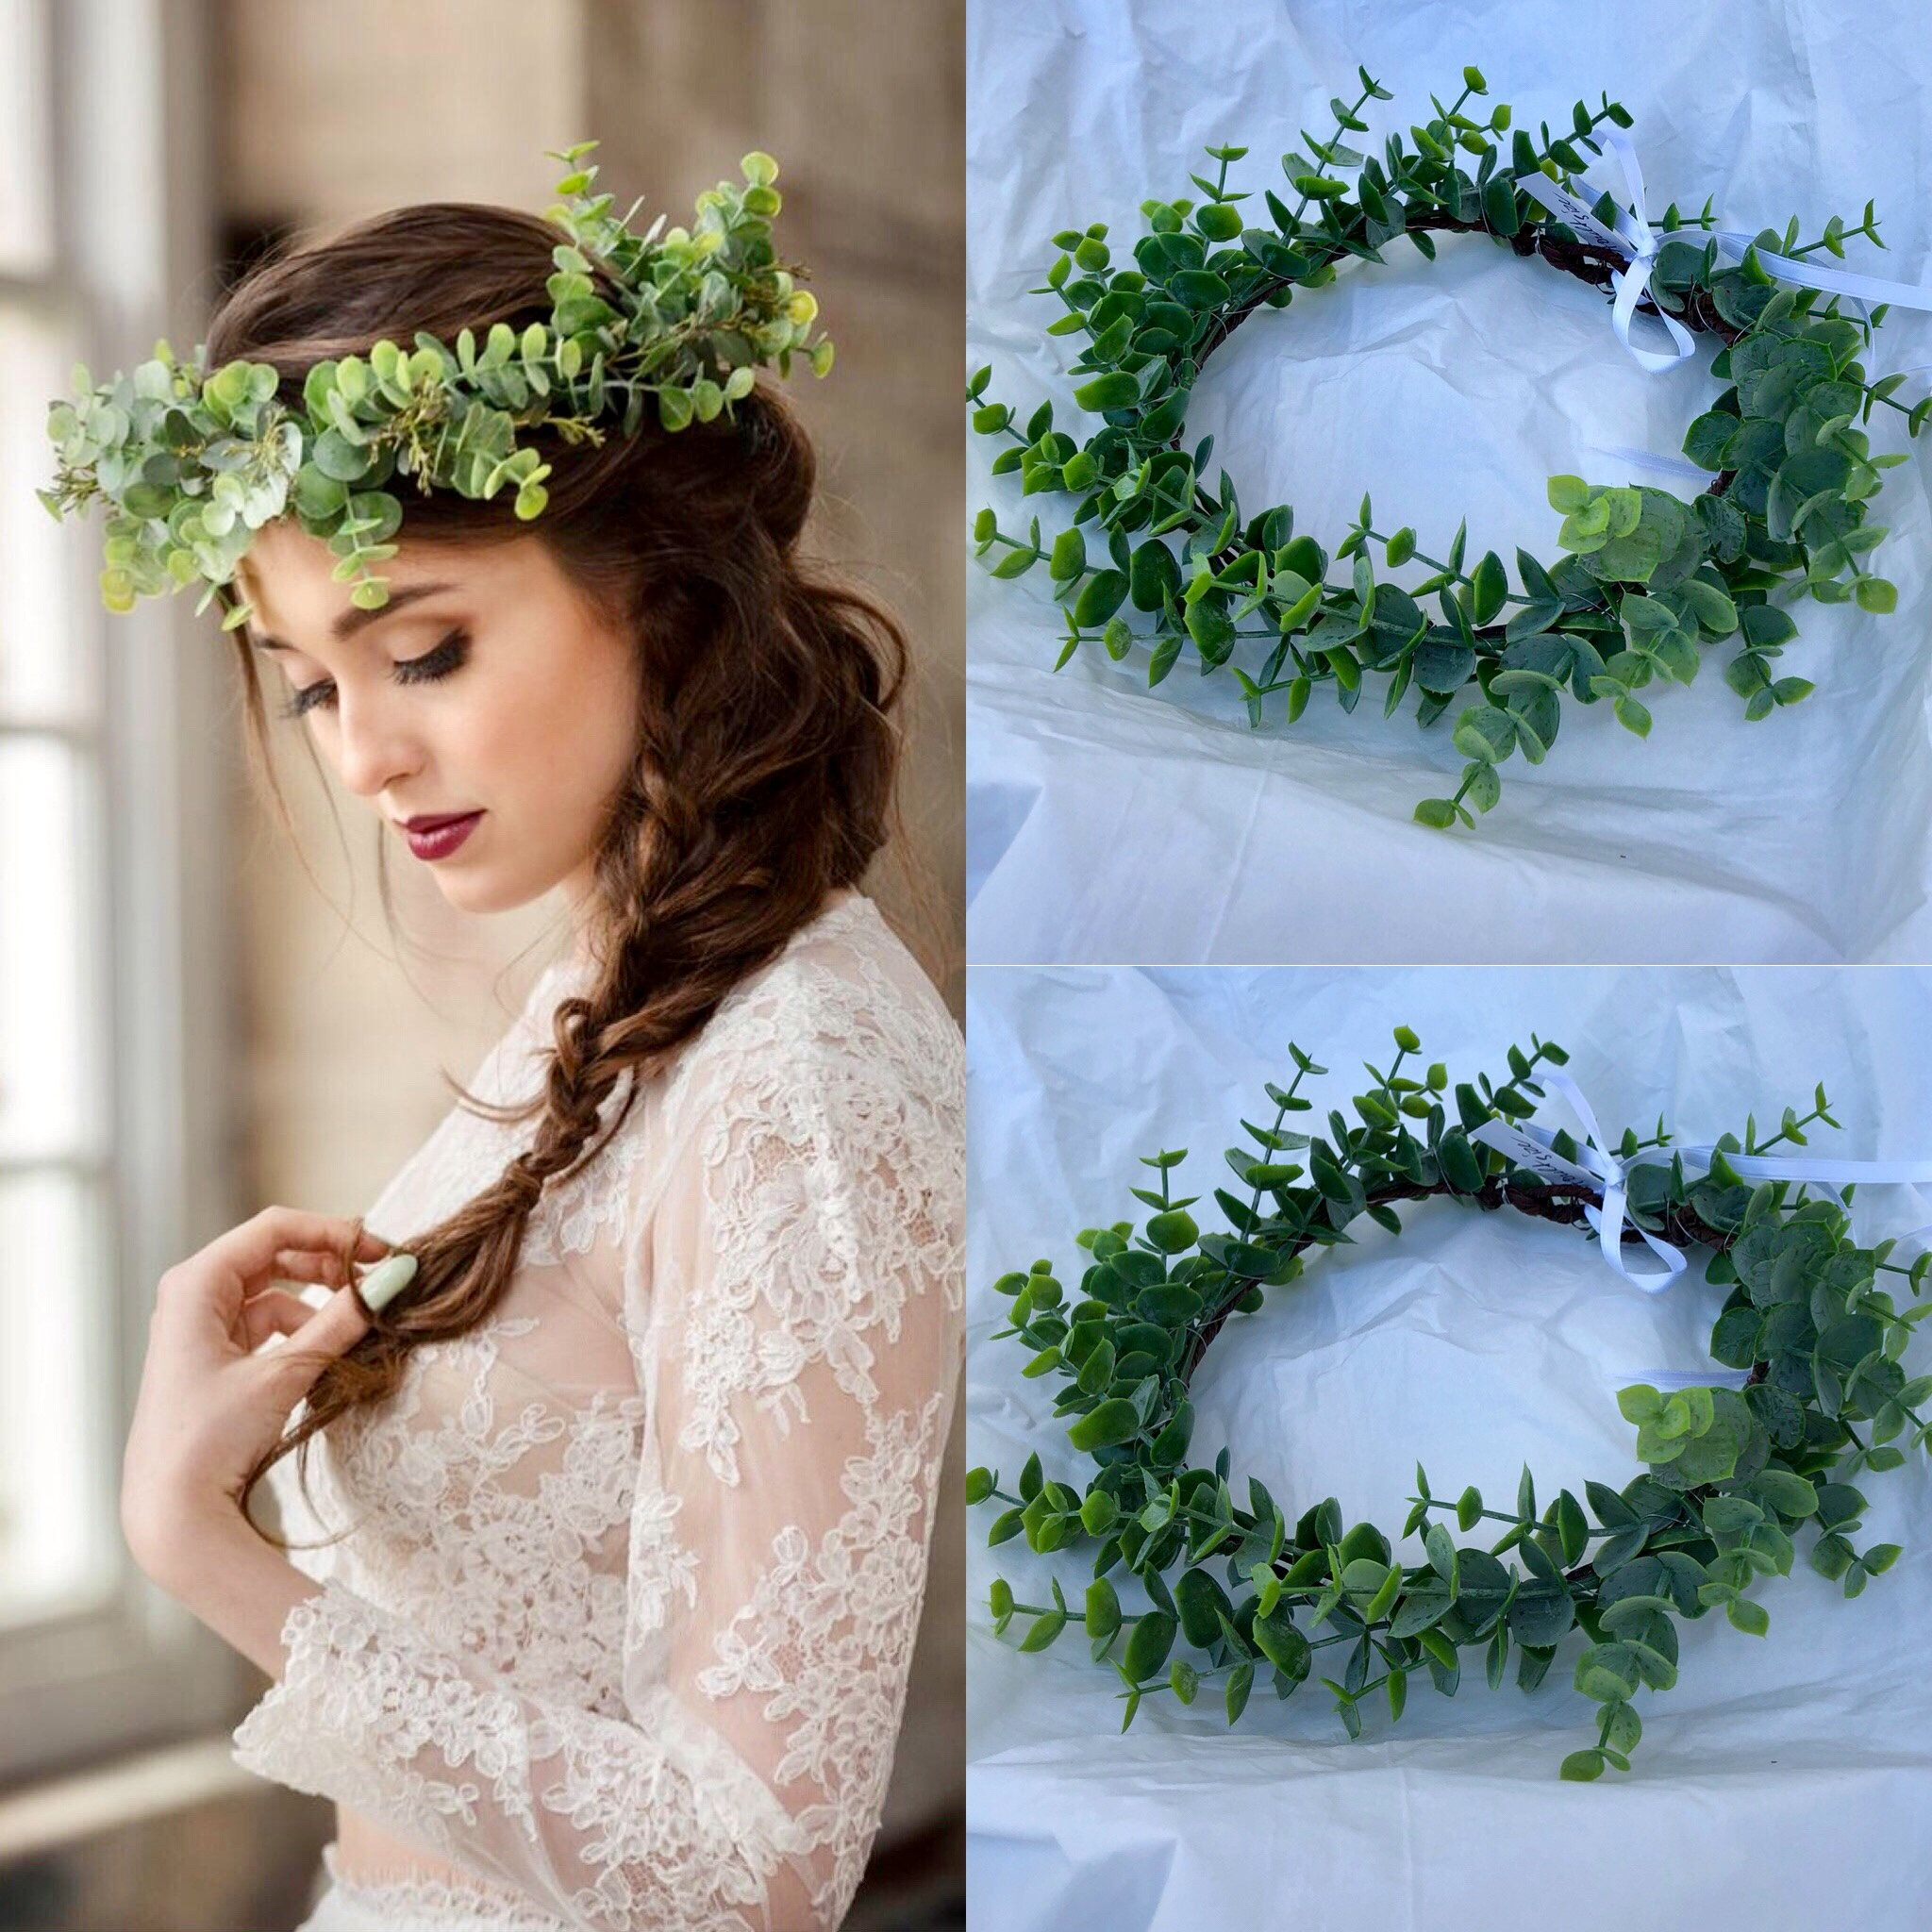 Savvi jewels mint green rose flower crown wedding floral crown savvi jewels mint green rose flower crown wedding floral crown flower girl crown boho flower crown bohemian izmirmasajfo